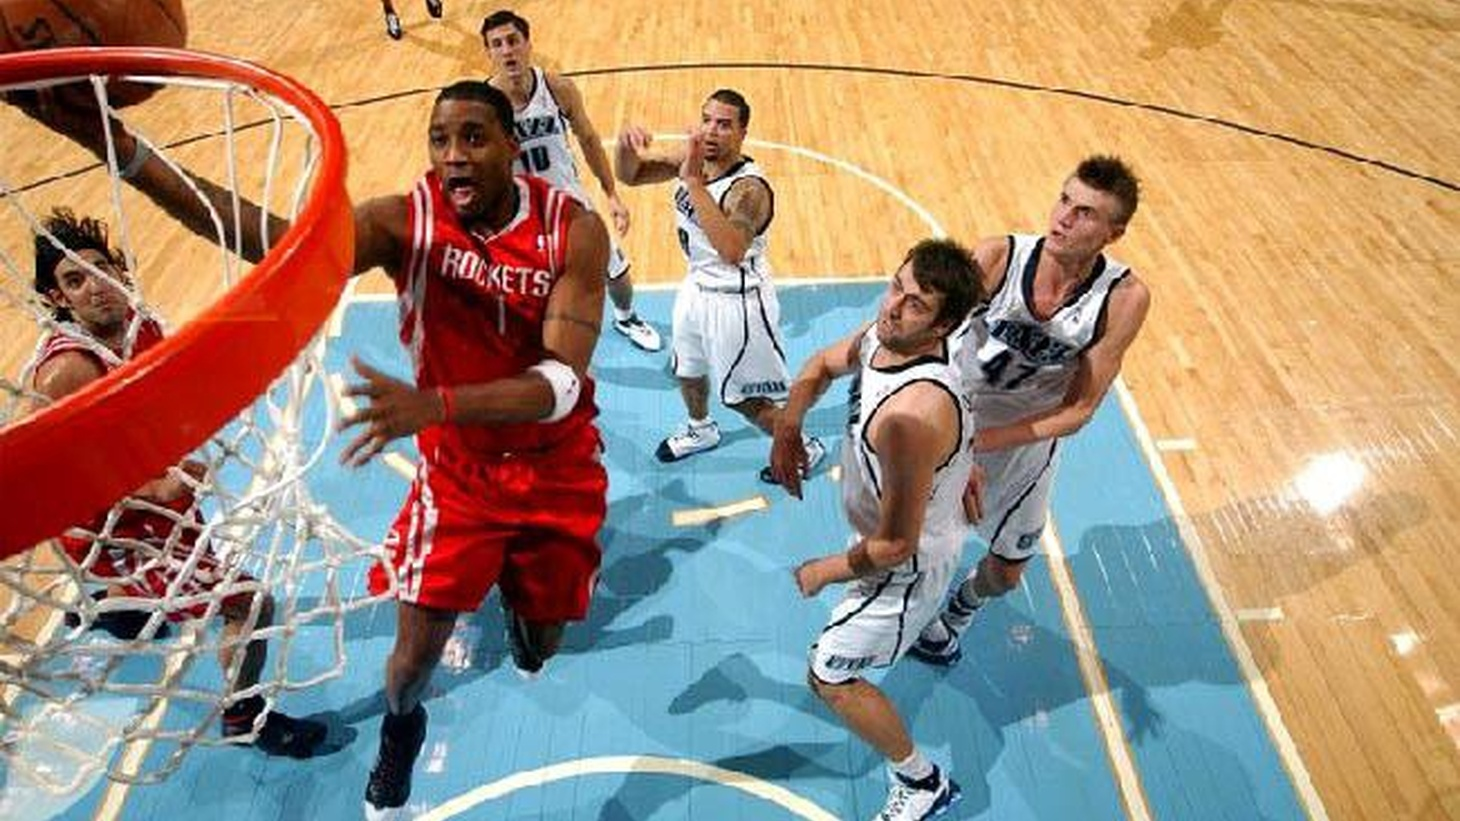 If any year was proof positive that high school players heading straight to the NBA was a good idea, it was this one. LeBron James was the League's MVP. Kobe Bryant and Dwight Howard are the superstars of the two teams in the finals. And it was only a year ago that Kevin Garnett, 2004's MVP, led his Celtics to the Championship..